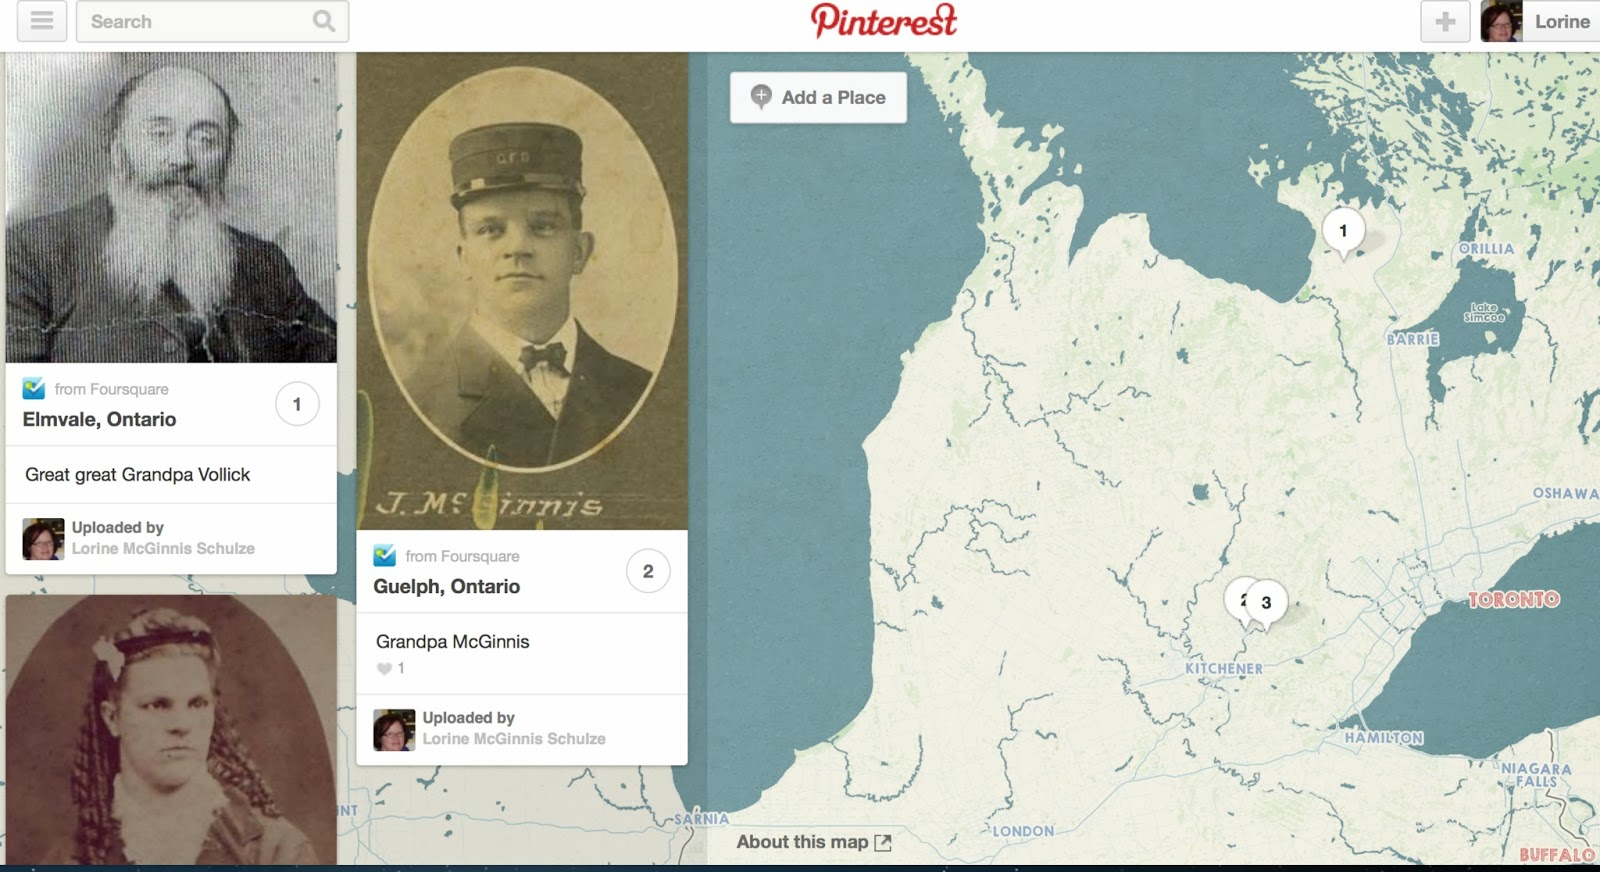 Olive Tree Genealogy Blog: New Map Feature on Pinterest is Pretty Cool